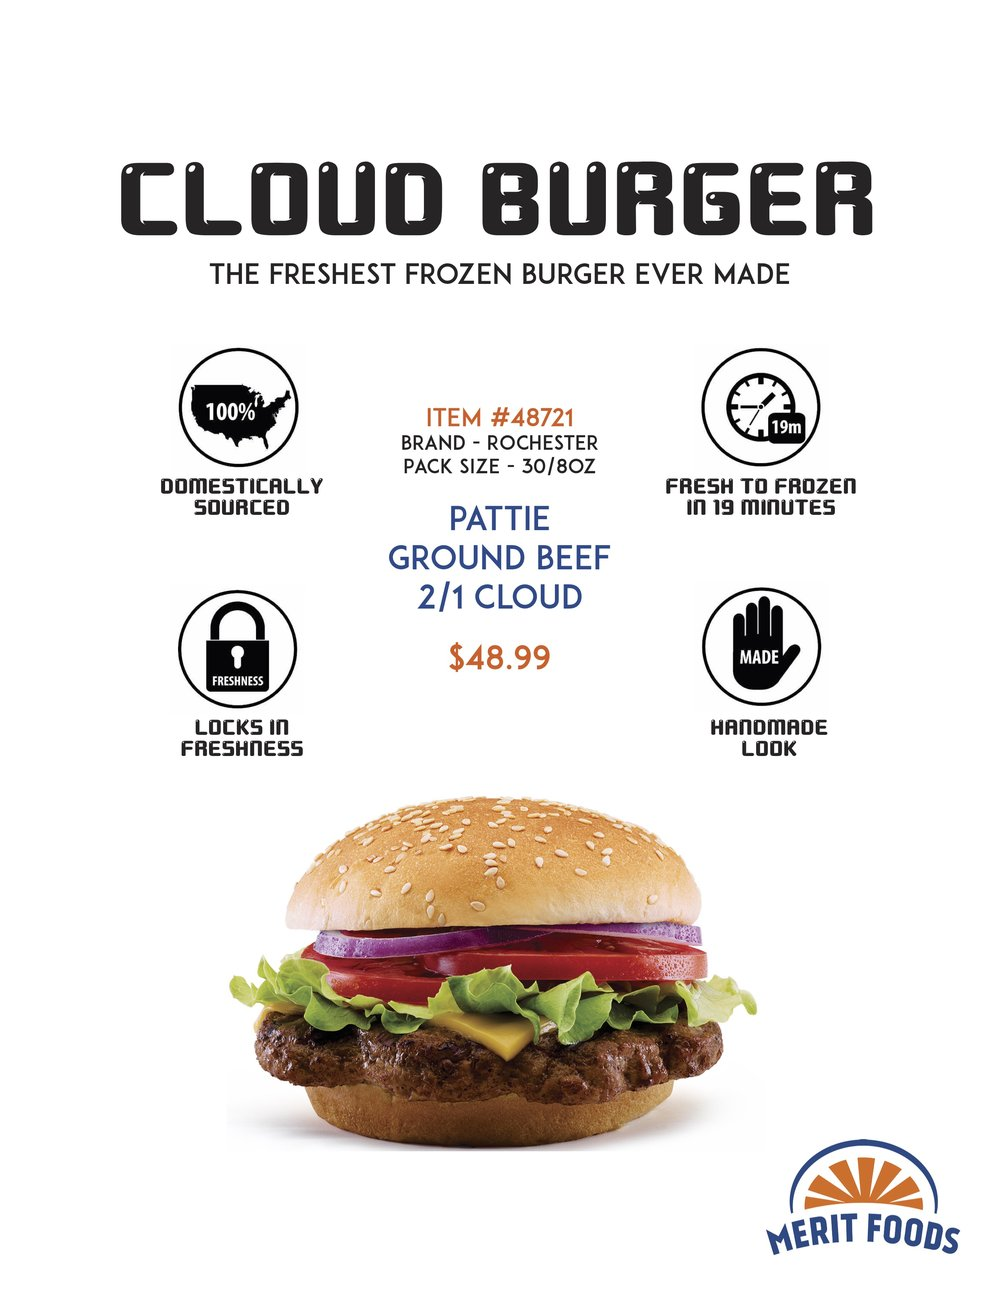 CloudBurger.jpg